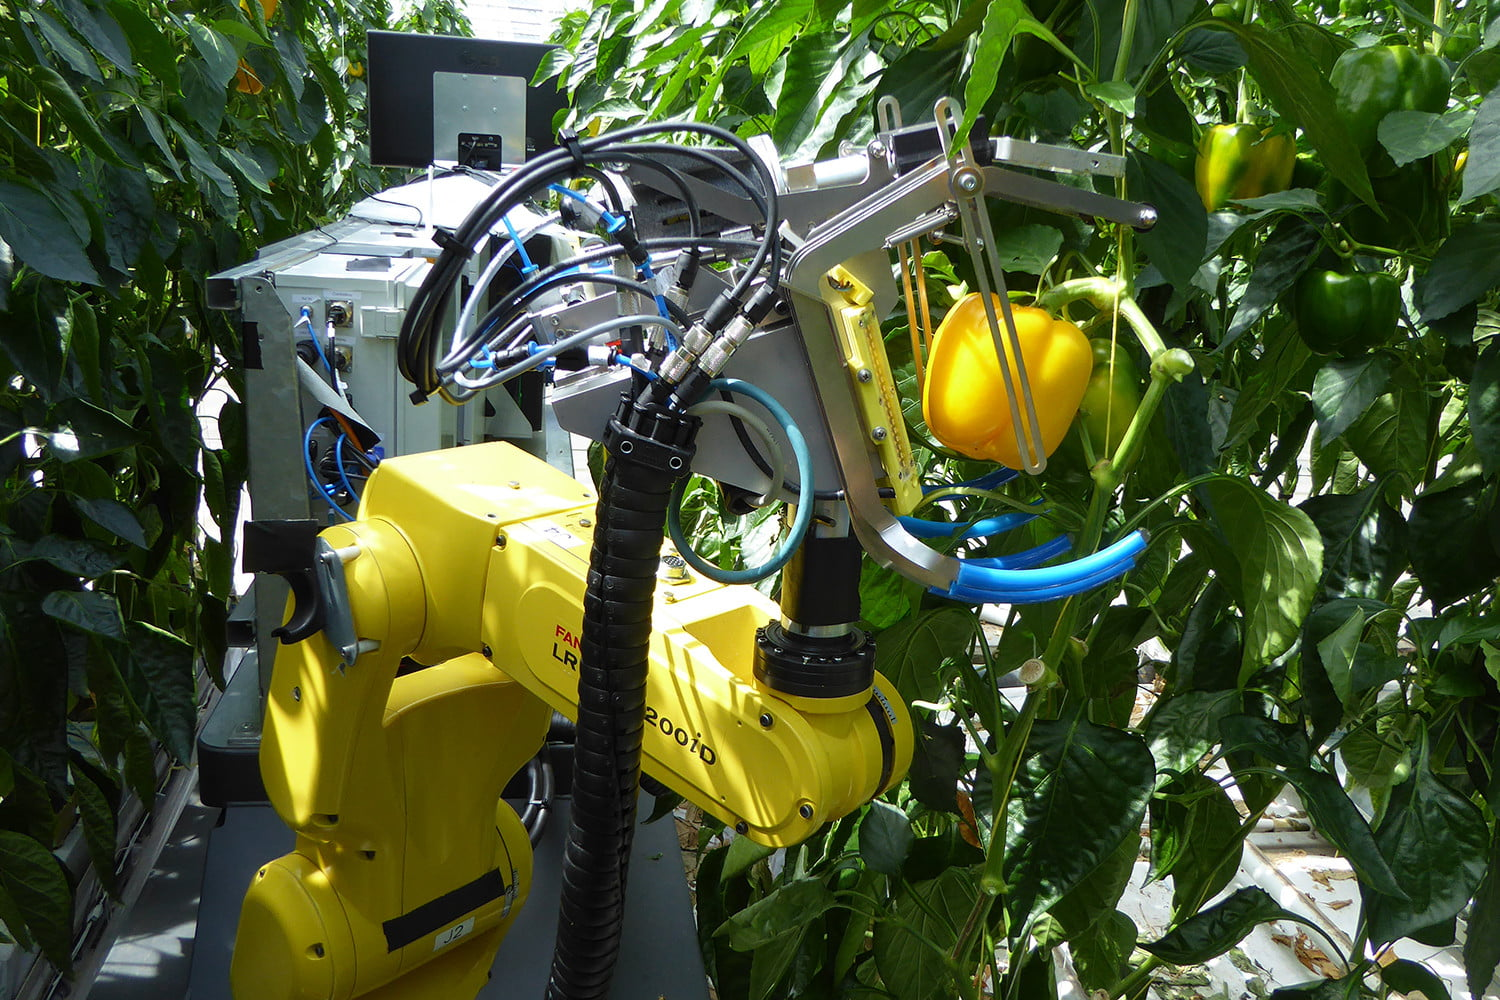 Robots Won't Just Harvest Our Foods, They May Help Save Them